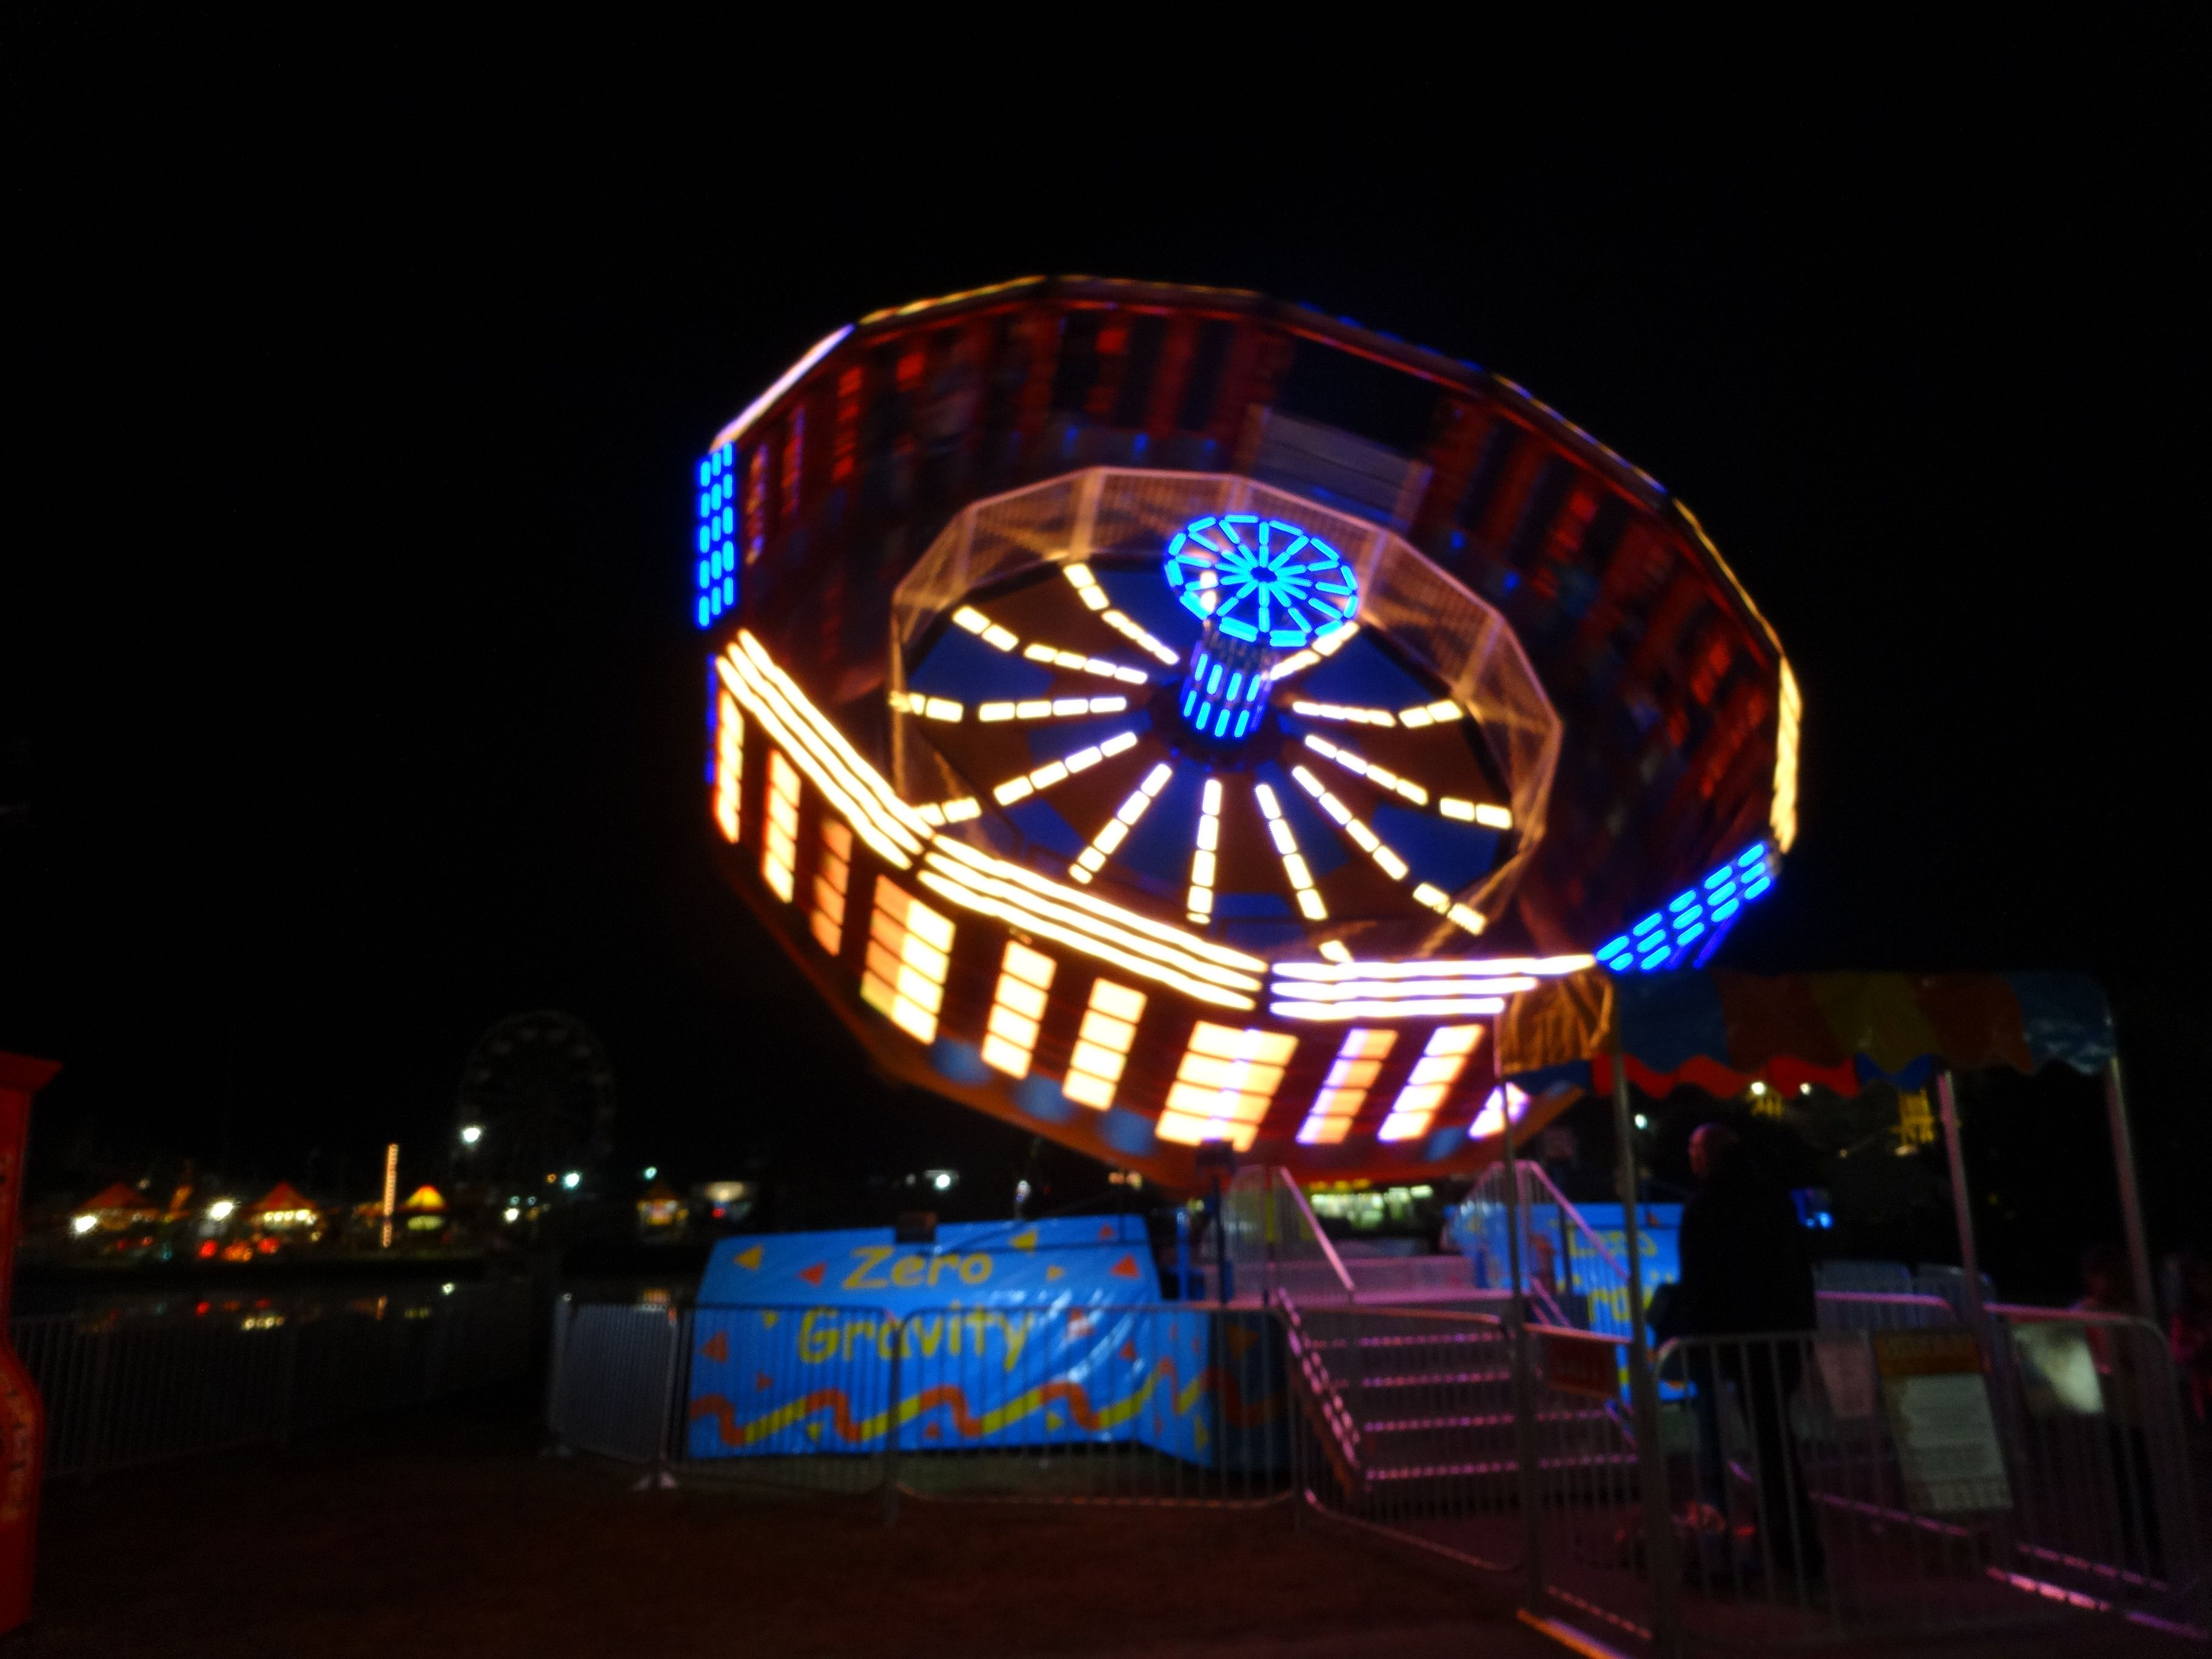 New jersey sussex county layton -  Amazing Night Rides Nj State Fair